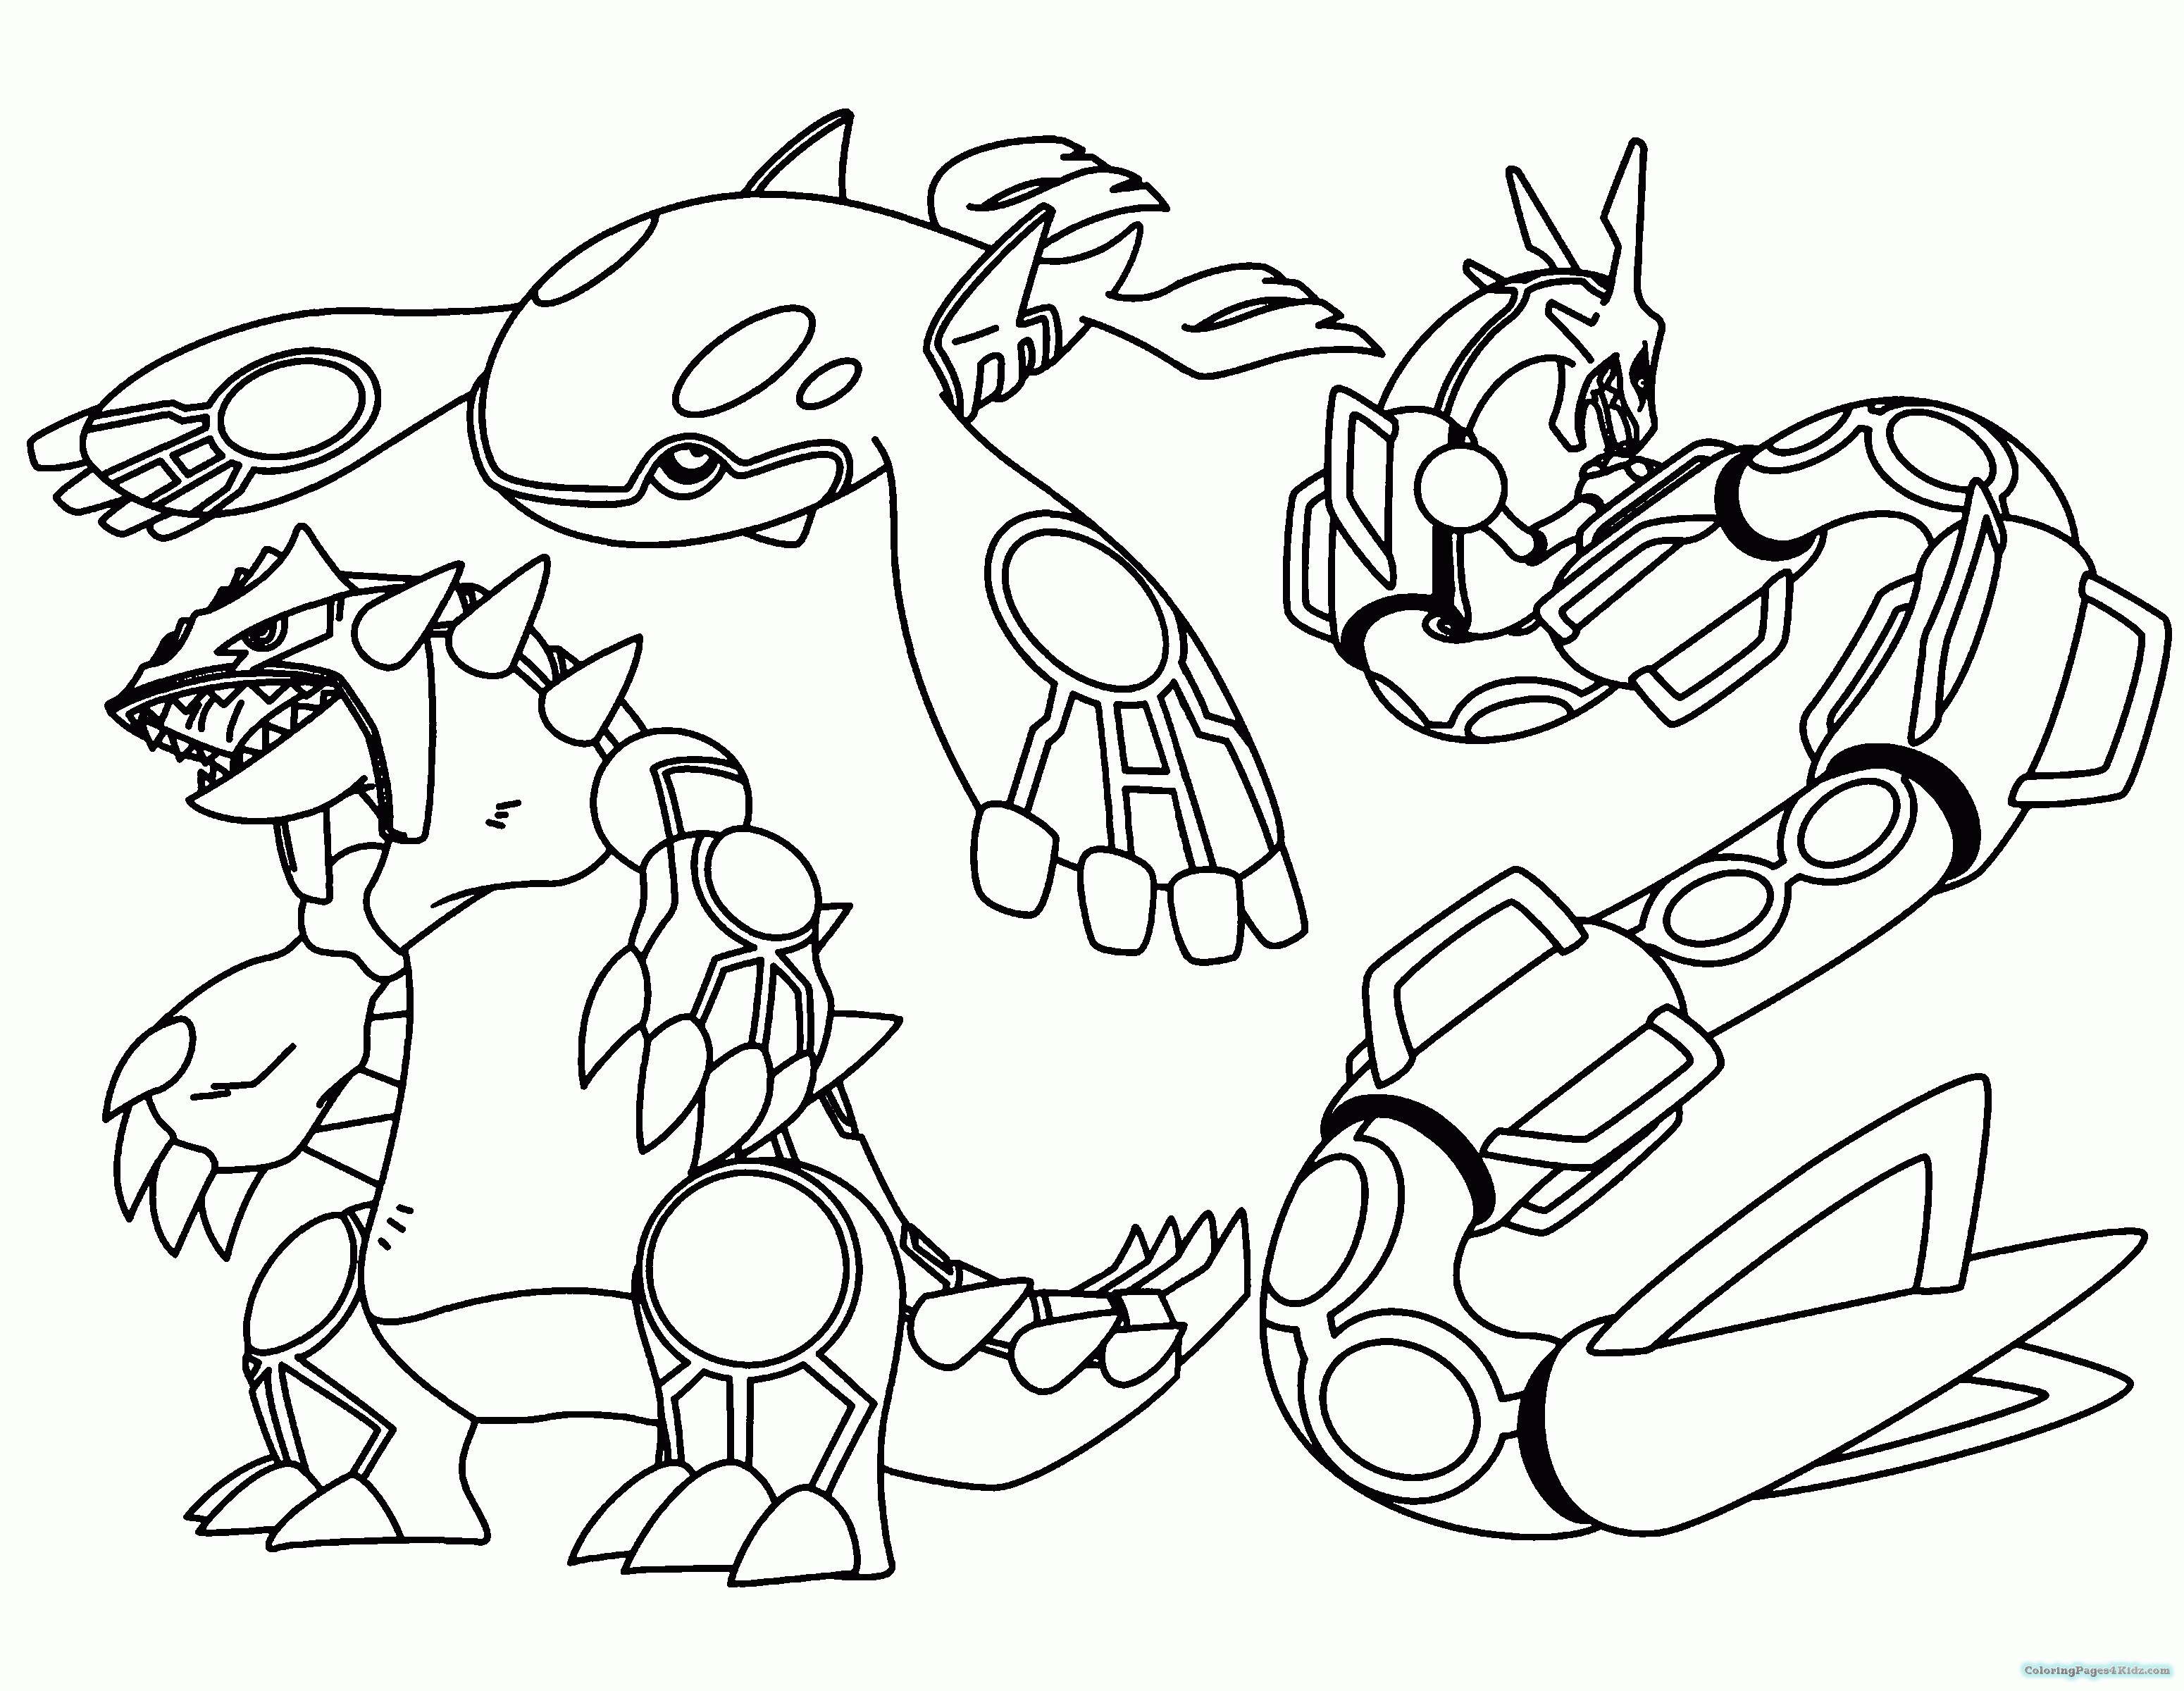 Pokemon Coloring Pages to Print   Free Coloring Sheets